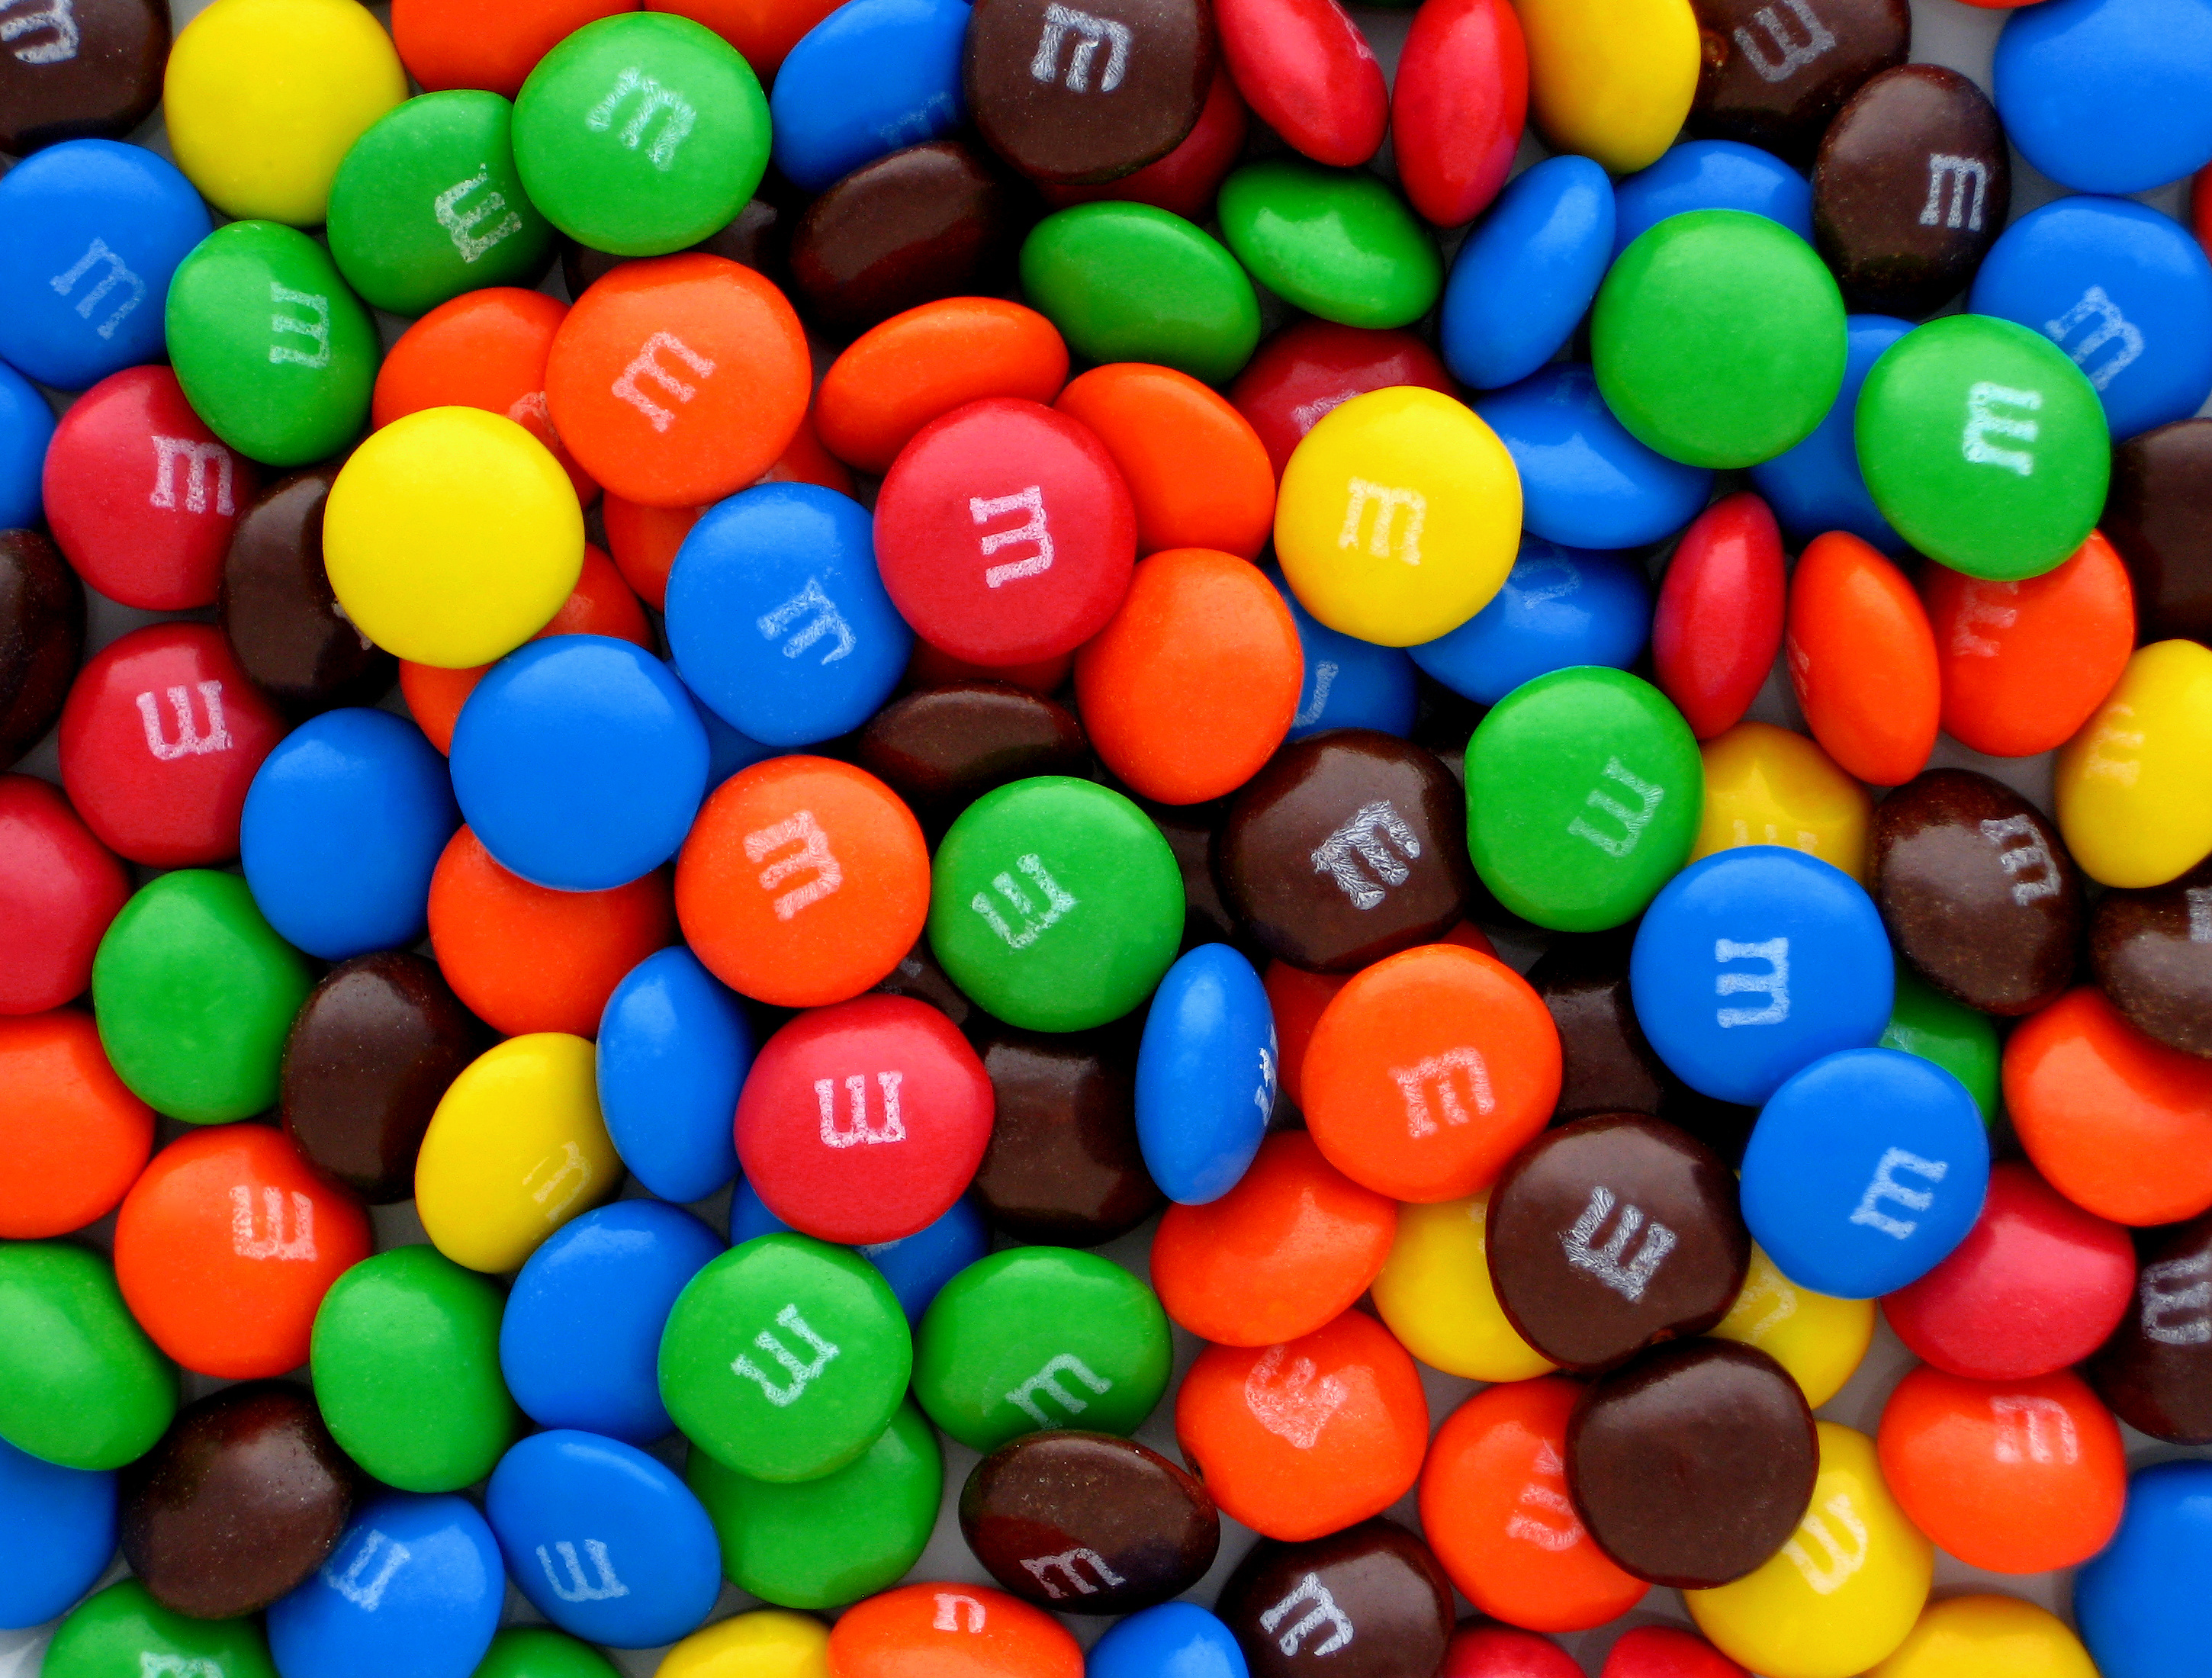 M&m's clipart candy Candies Clip M&m Clip Vs